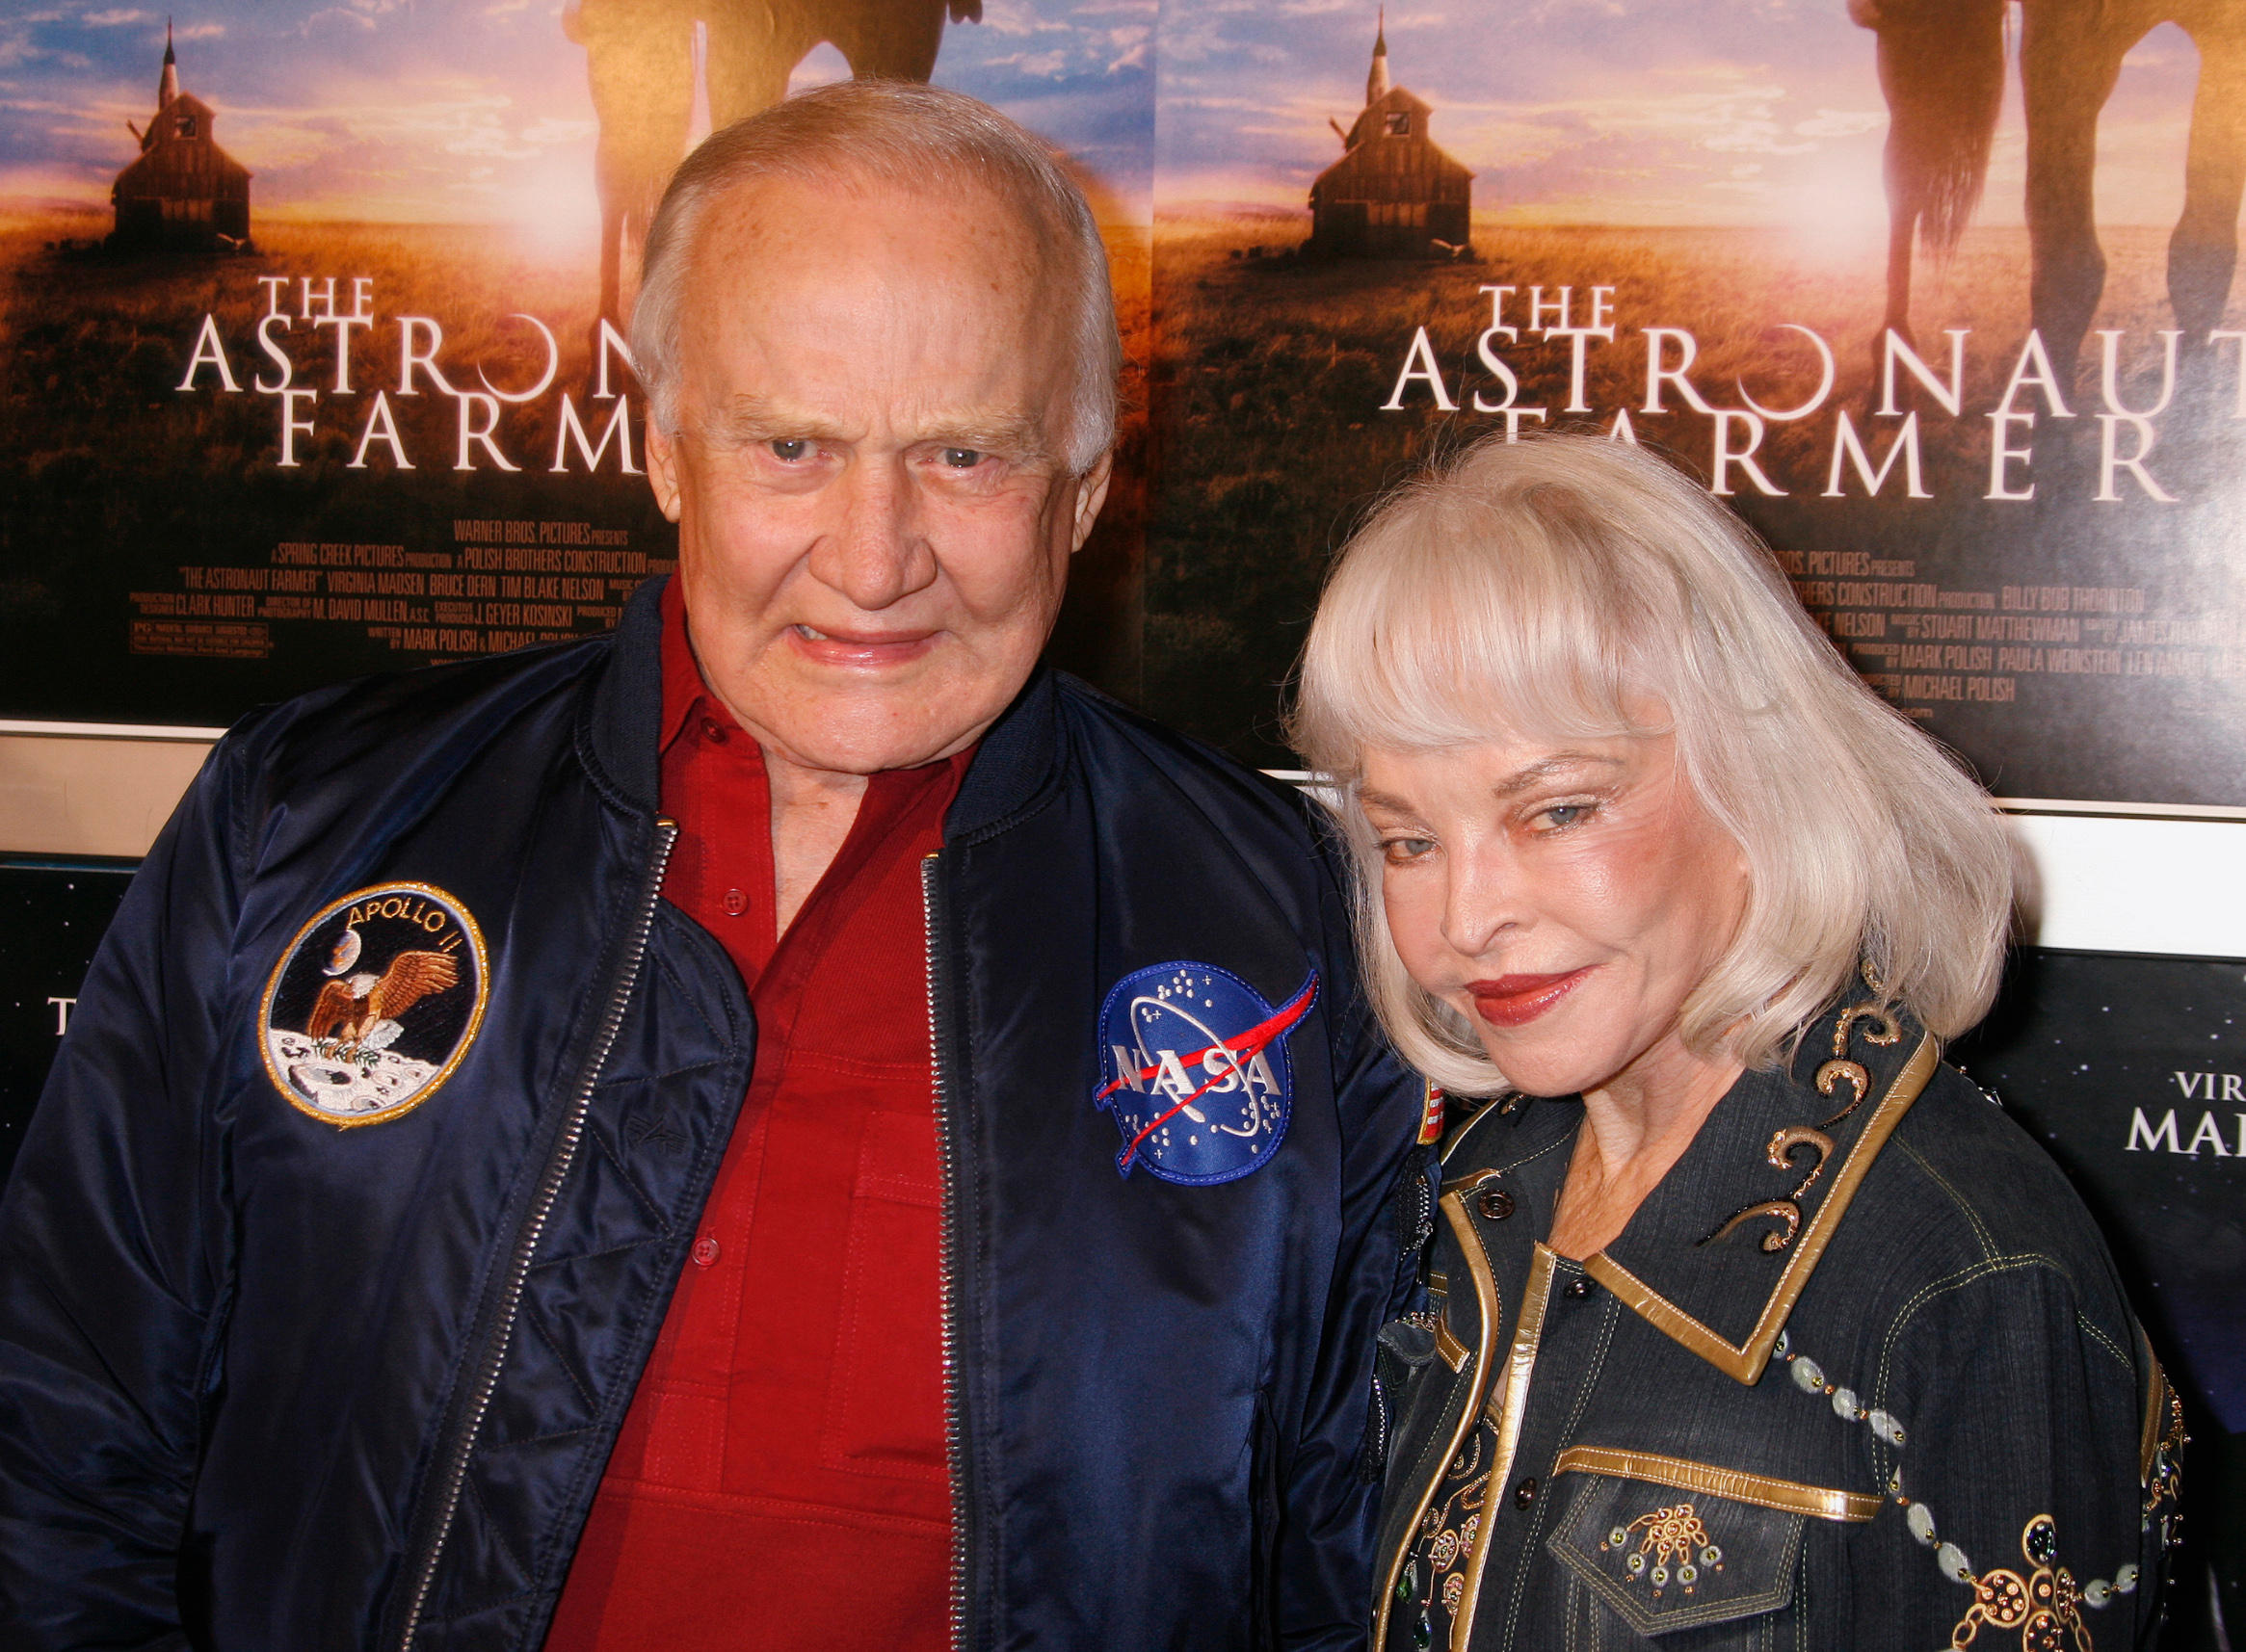 Former NASA astronaut Buzz Aldrin (L) and wife Lois pose as they arrive as guests at the premiere of the film 'The Astronaut Farmer' in Los Angeles February 20, 2007. Aldrin, a crew member of the Apollo 11 mission, was the second man to walk on the Moon on July 20, 1969, when the Apollo 11 Lunar Module landed on the moon's Sea of Tranquility. REUTERS/Fred Prouser     (UNITED STATES) - GM1DUQTZUEAA